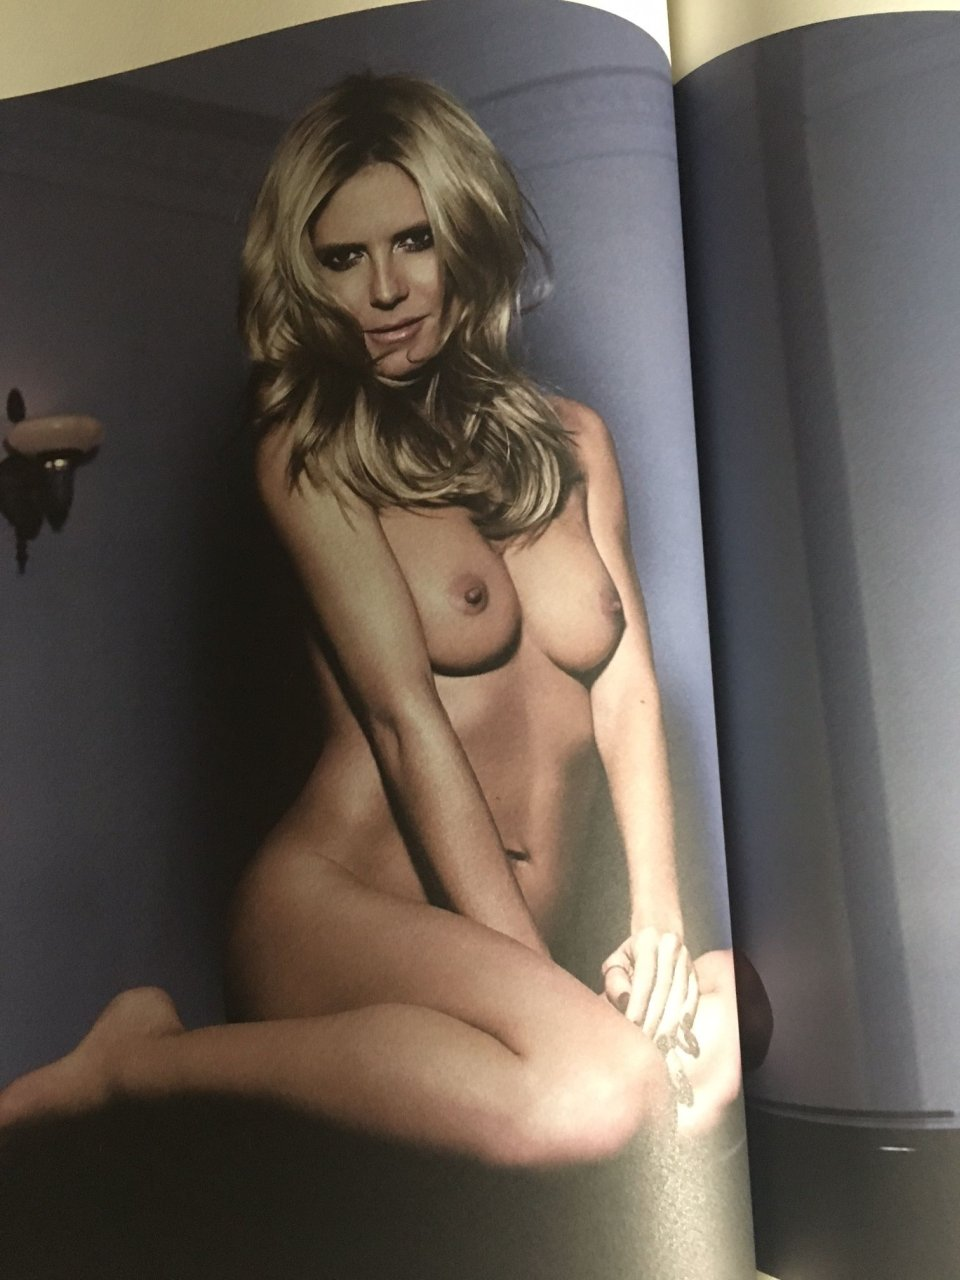 Heidi Klum Nude 17 Photos